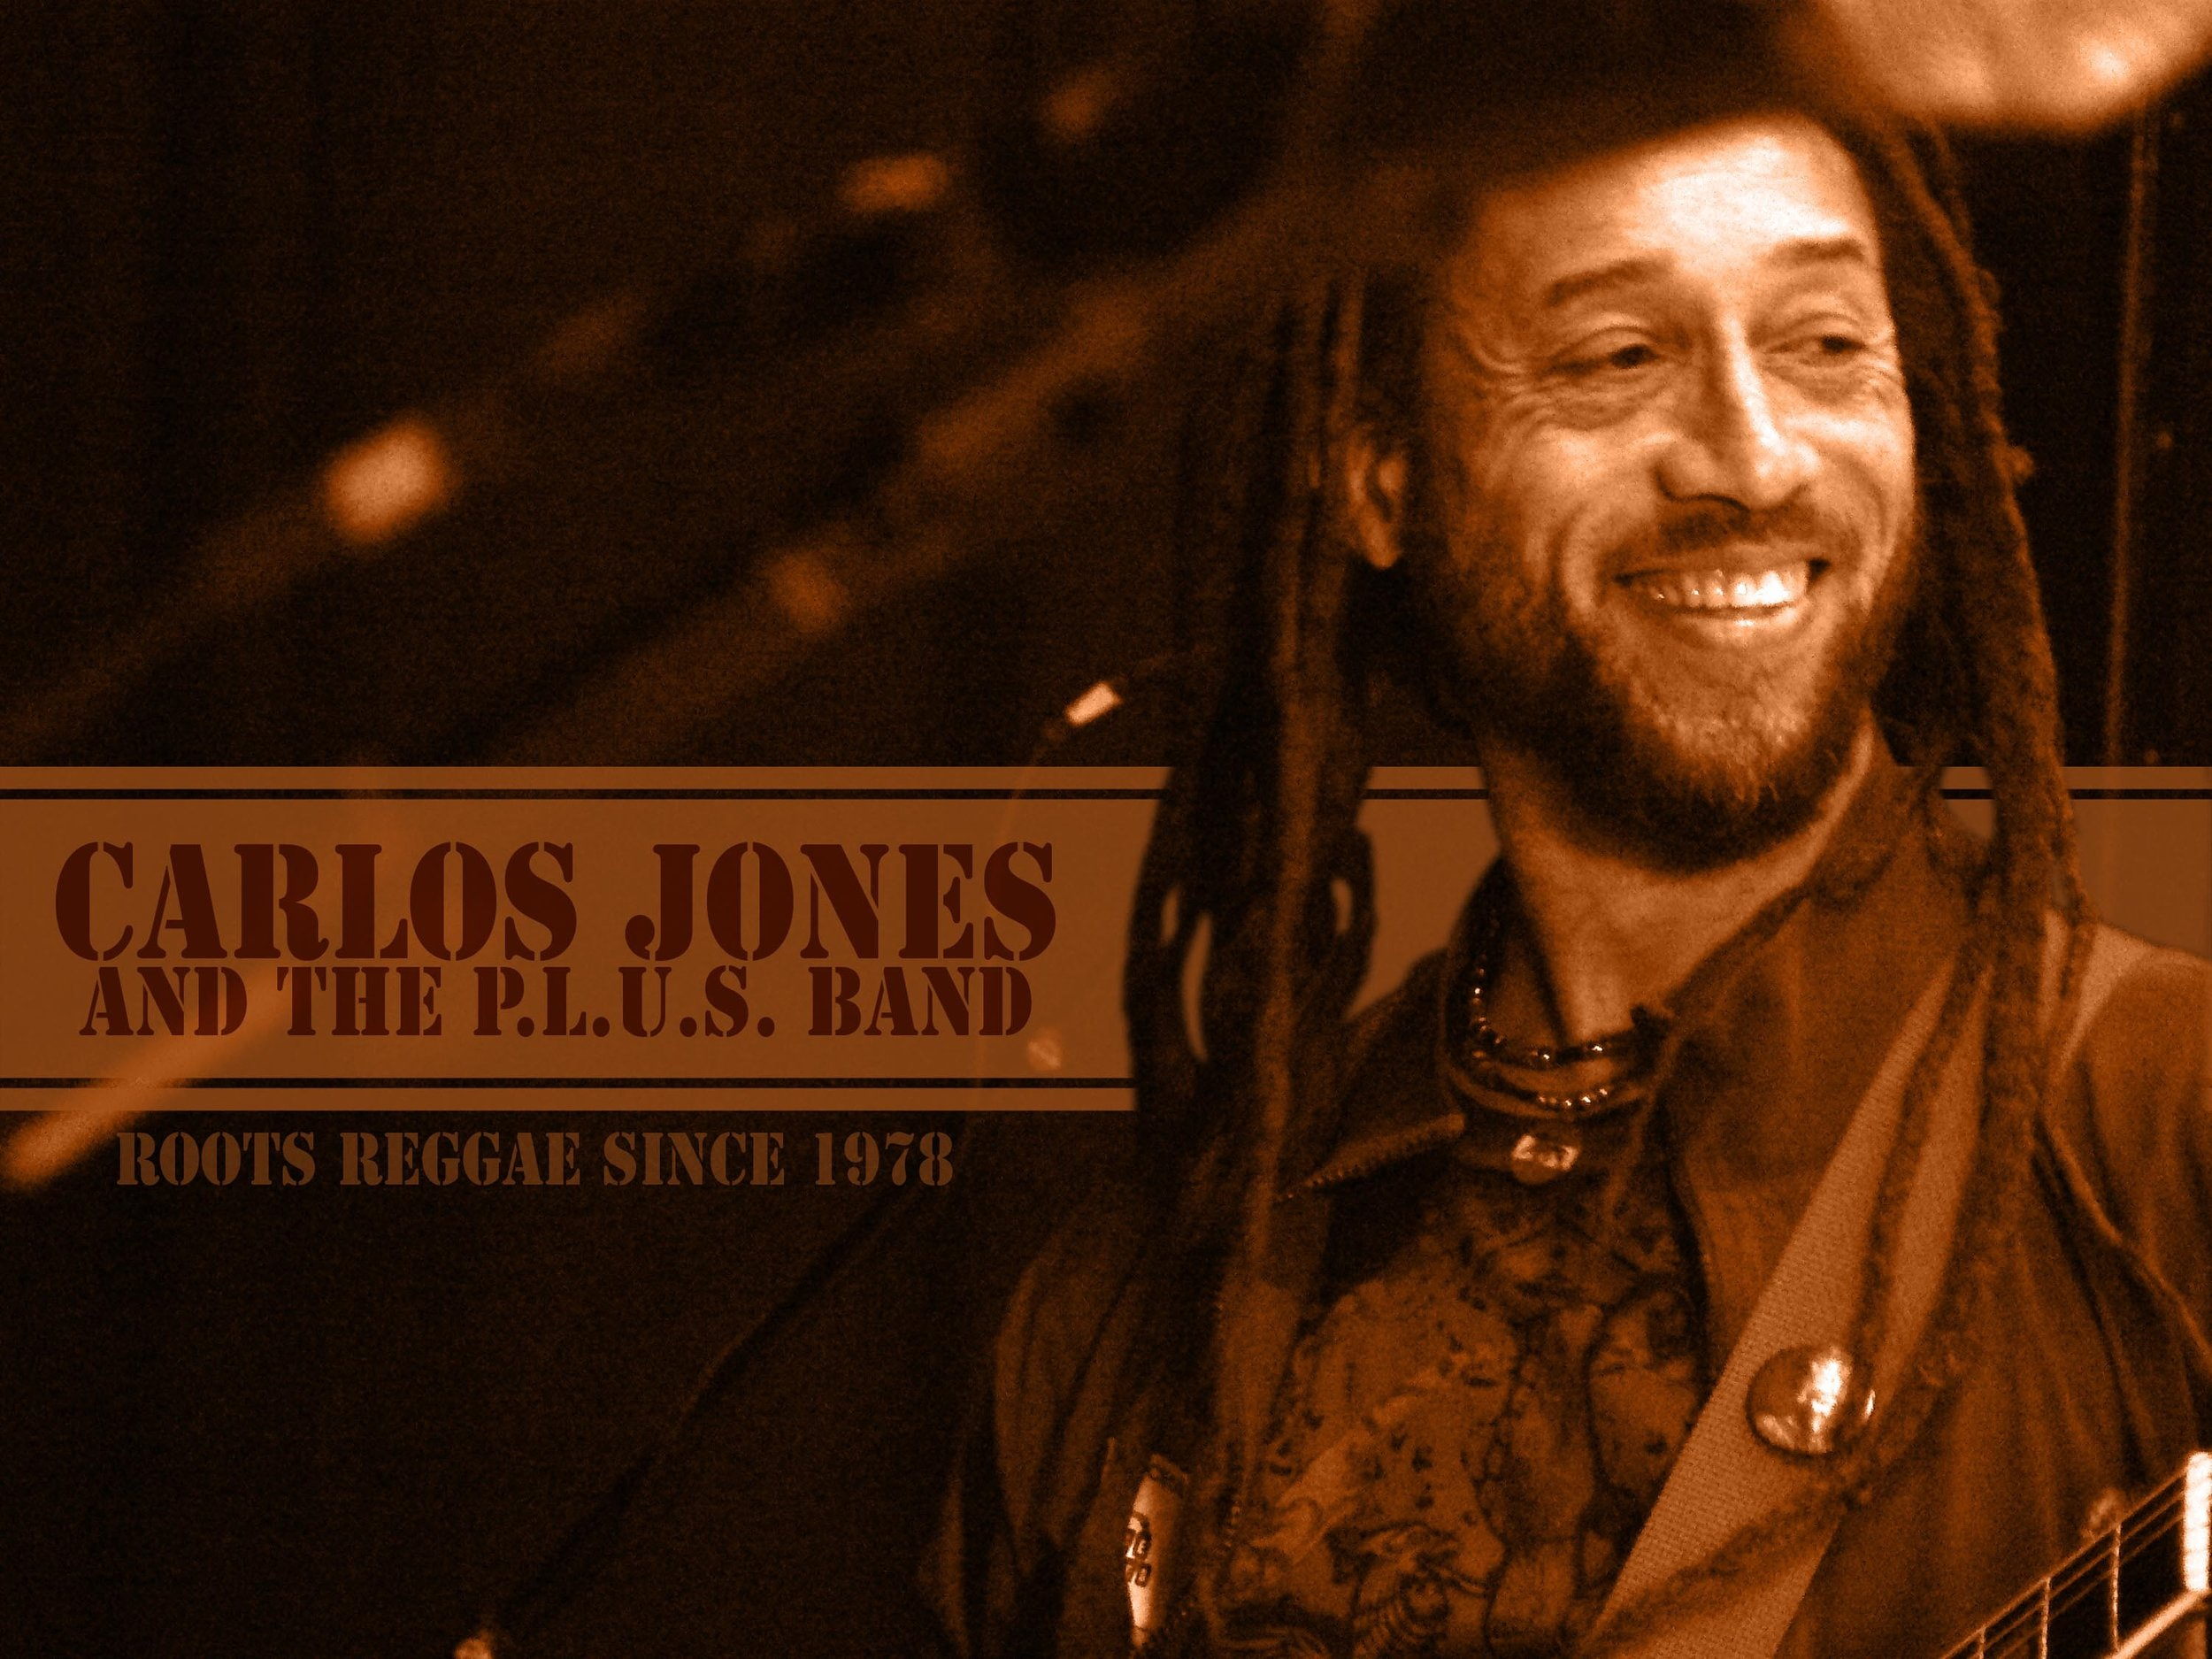 Carlos Jones & The P.L.U.S. Band - Choosing to focus on bringing a positive message with his music, Carlos has continued to win a diverse group of new fans everywhere he plays.